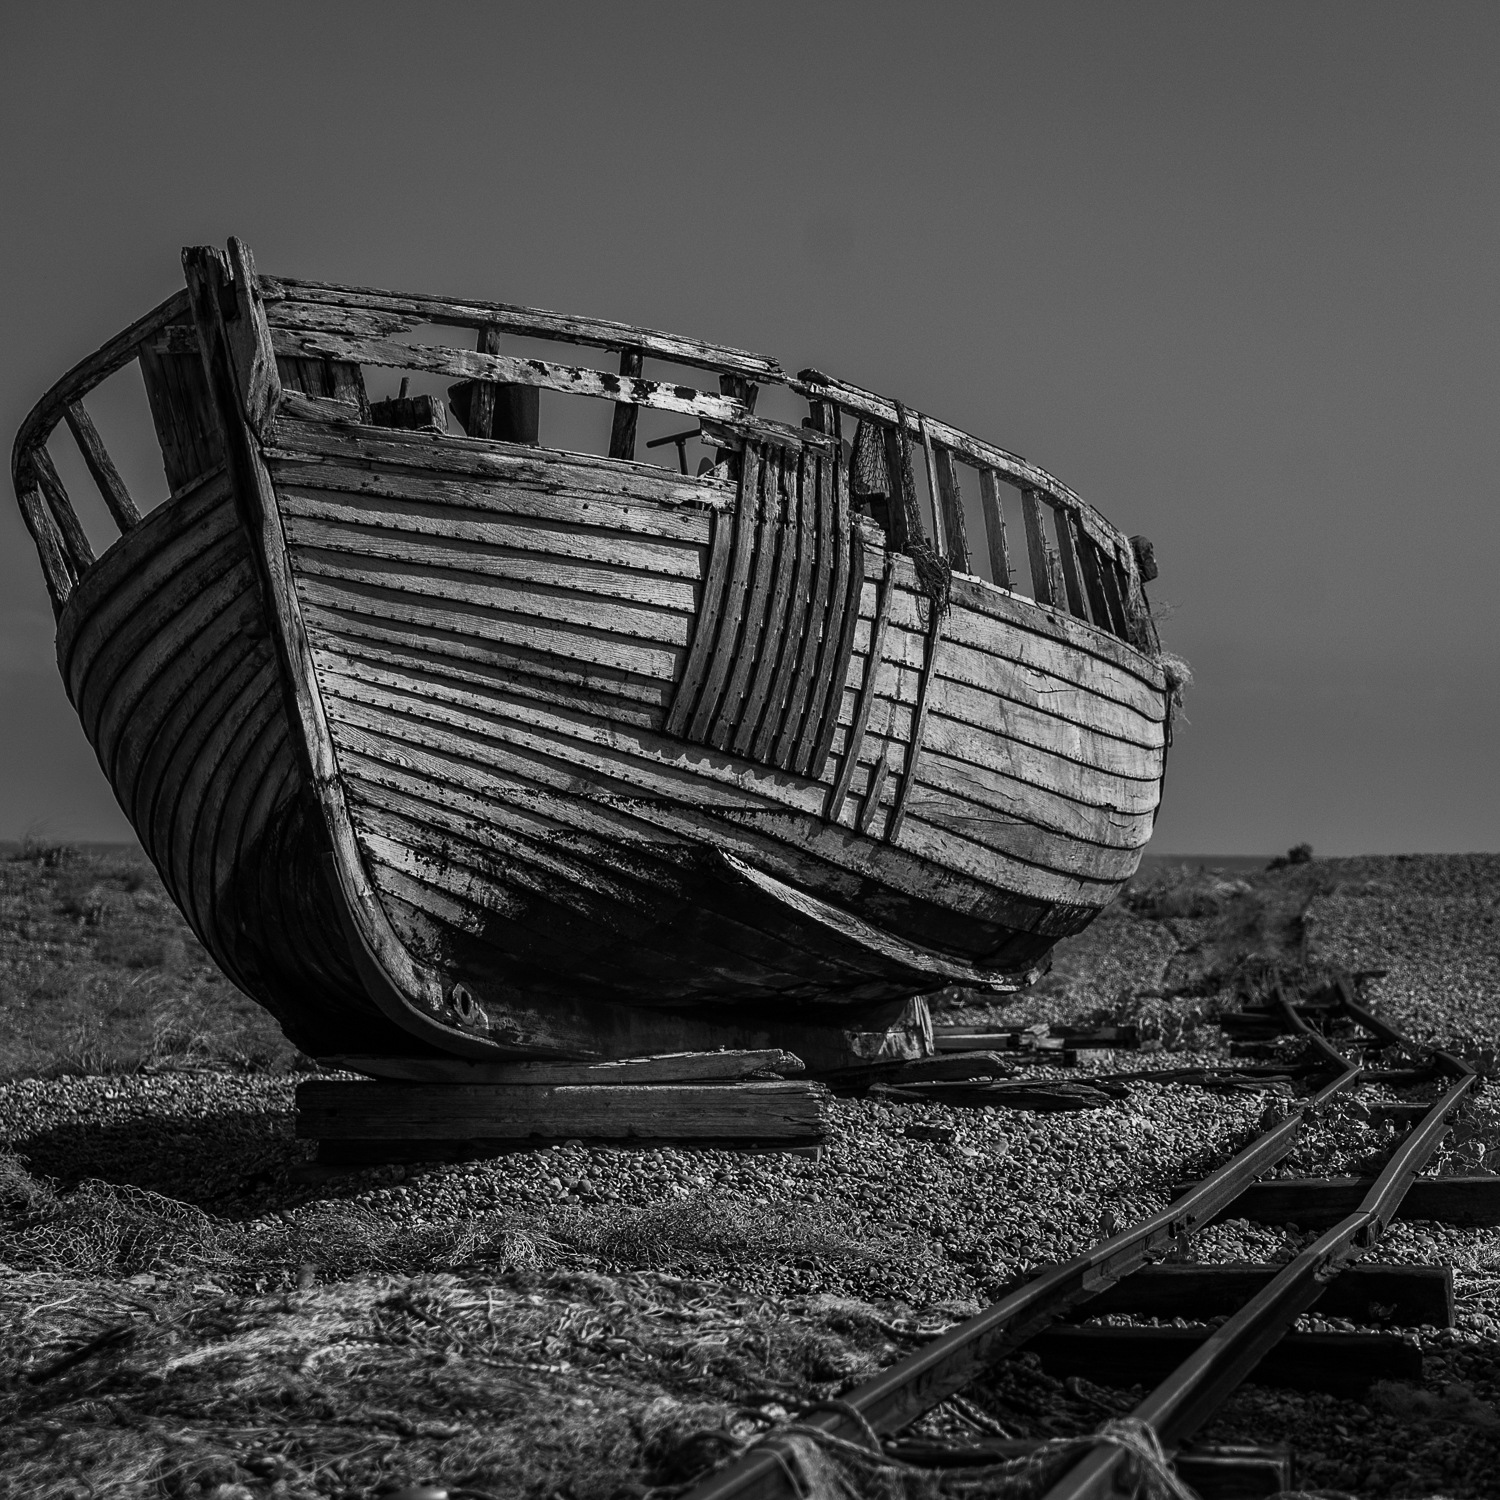 End of the Track for this Fishing Boat by mike hughes